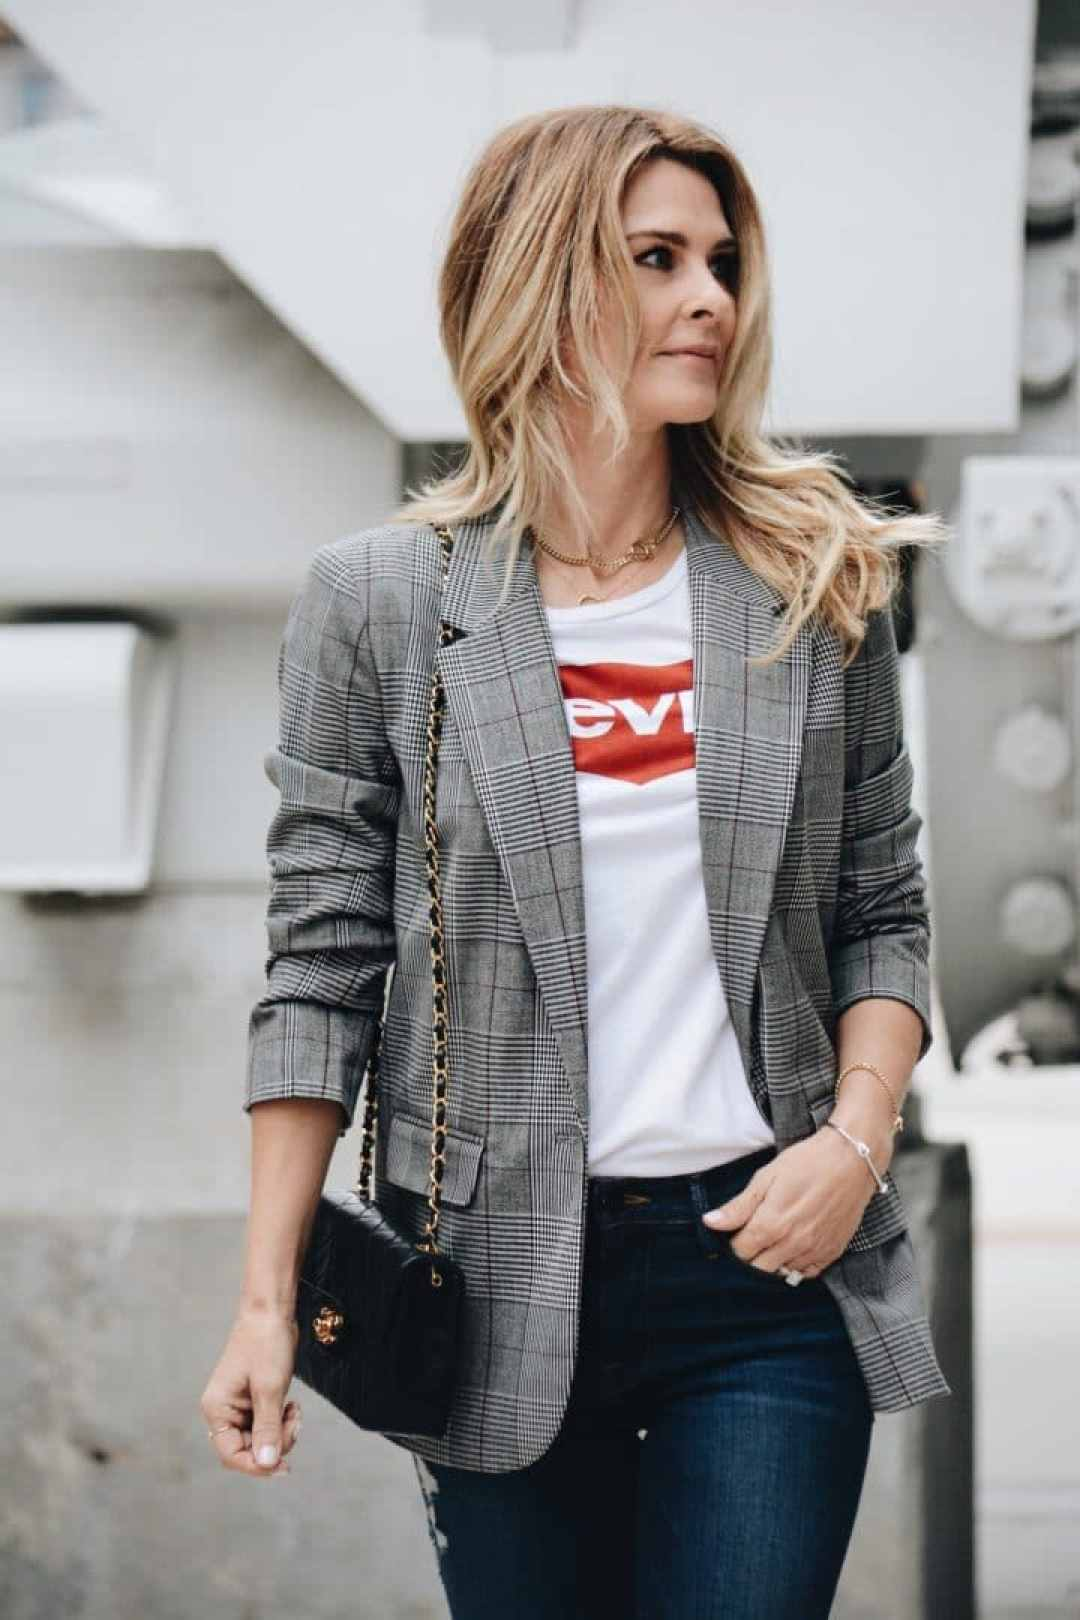 Plaid Menswear Blazer with Vintage Levi's tshirt and Chanel bag - Her Fashioned Life